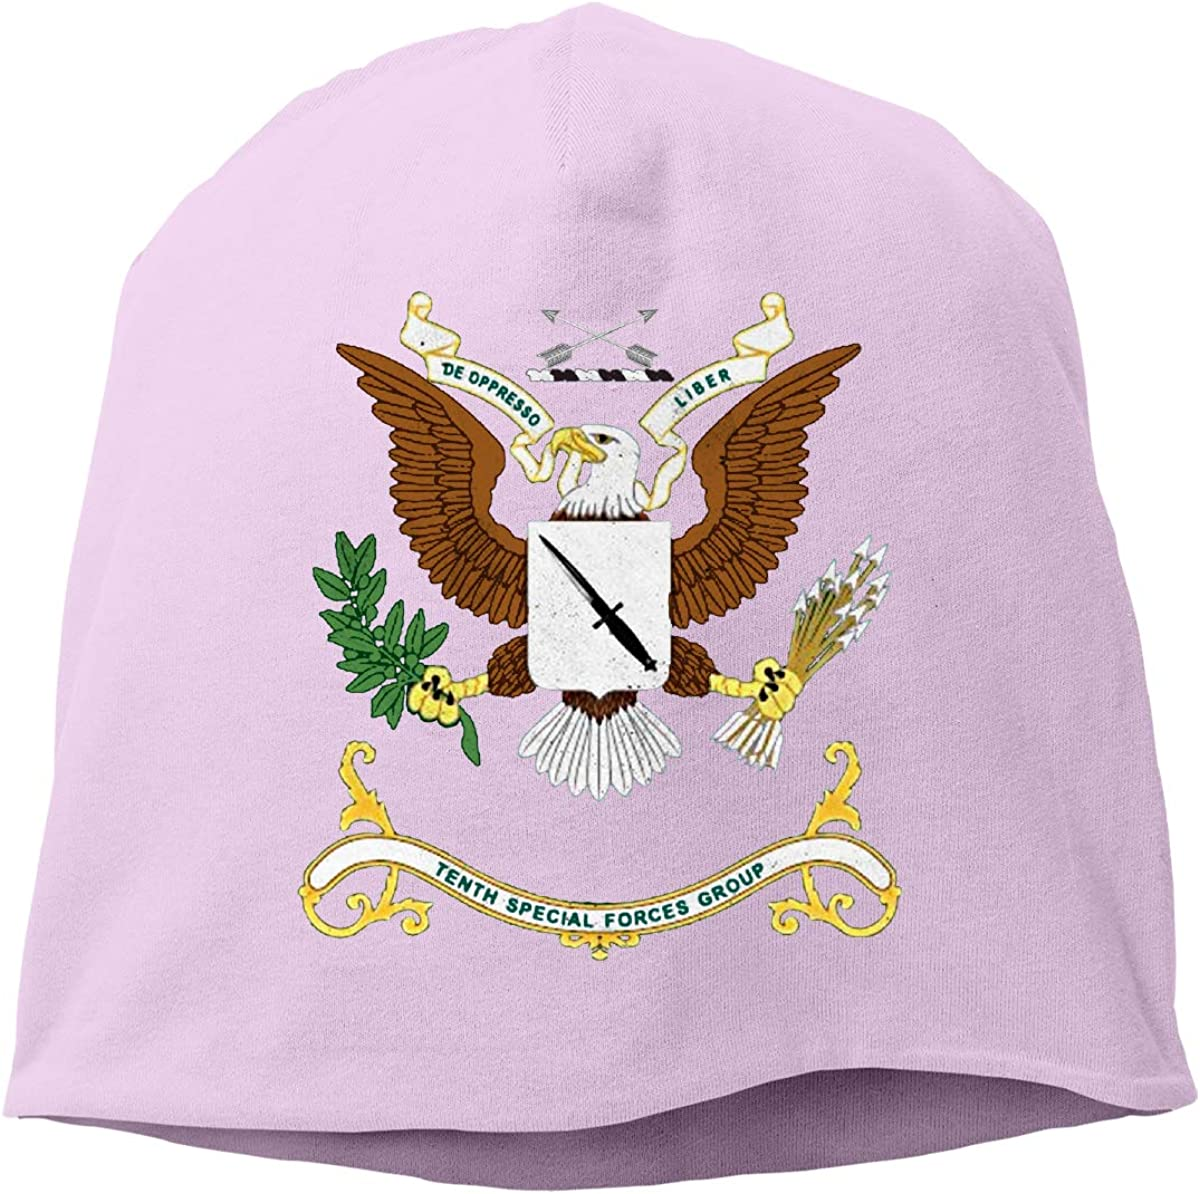 Unisex Us Army Tenth Special Forces Groups Running Beanie Cap Cuffed Plain Skull Cap Hat